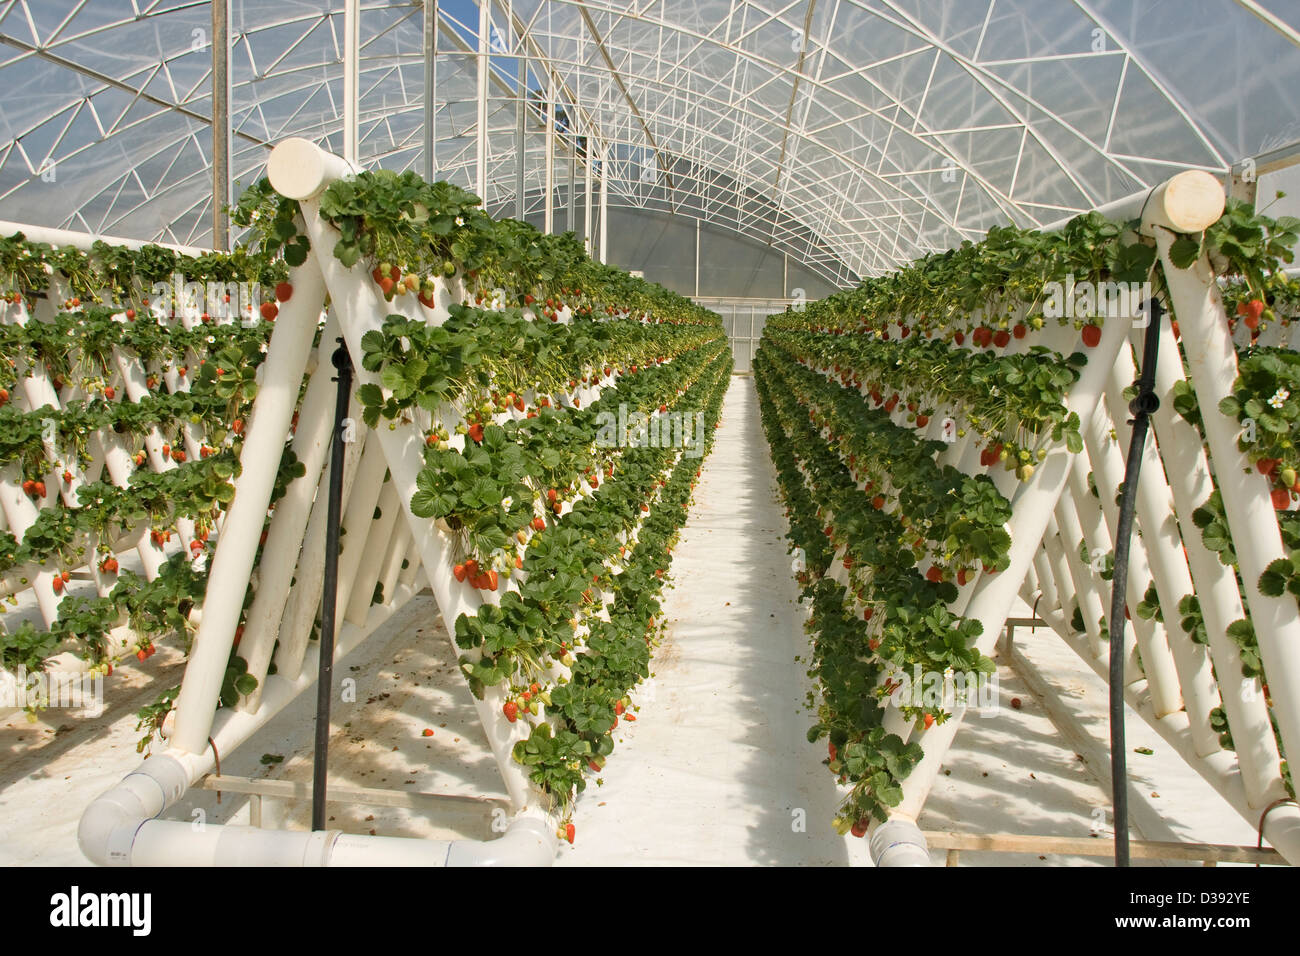 Rows Of Ripe Red Strawberries And Foliage Of Plants